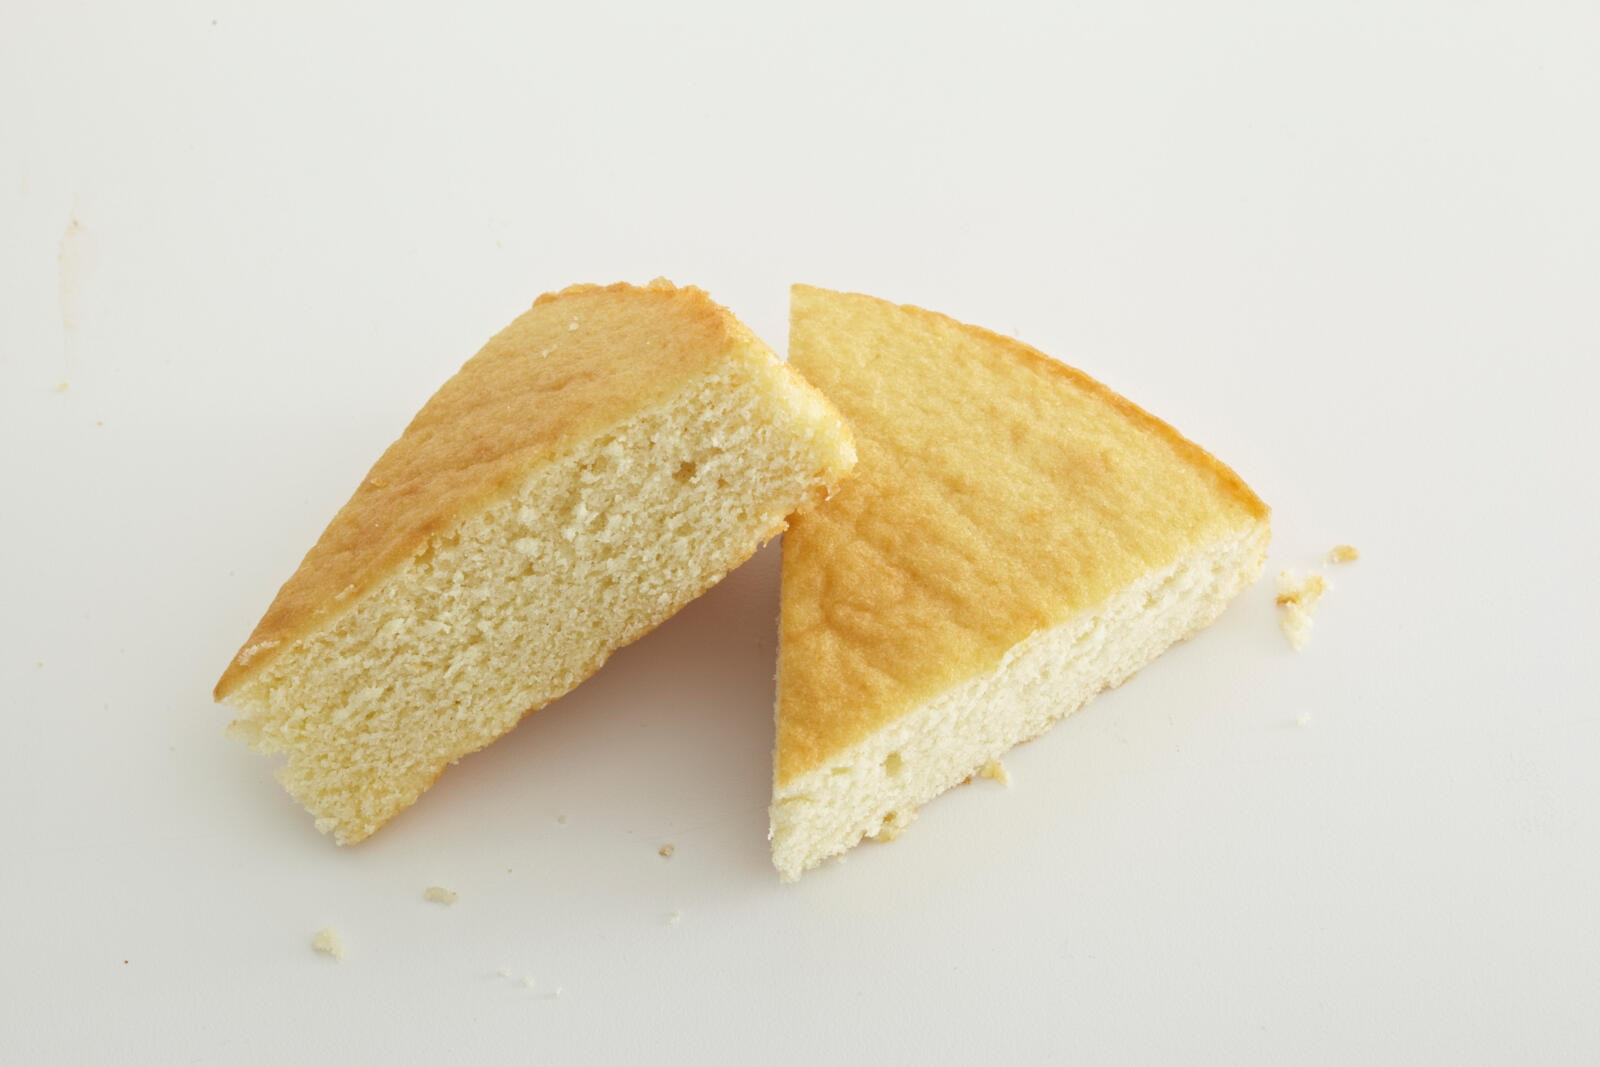 wedges of plain yellow cake